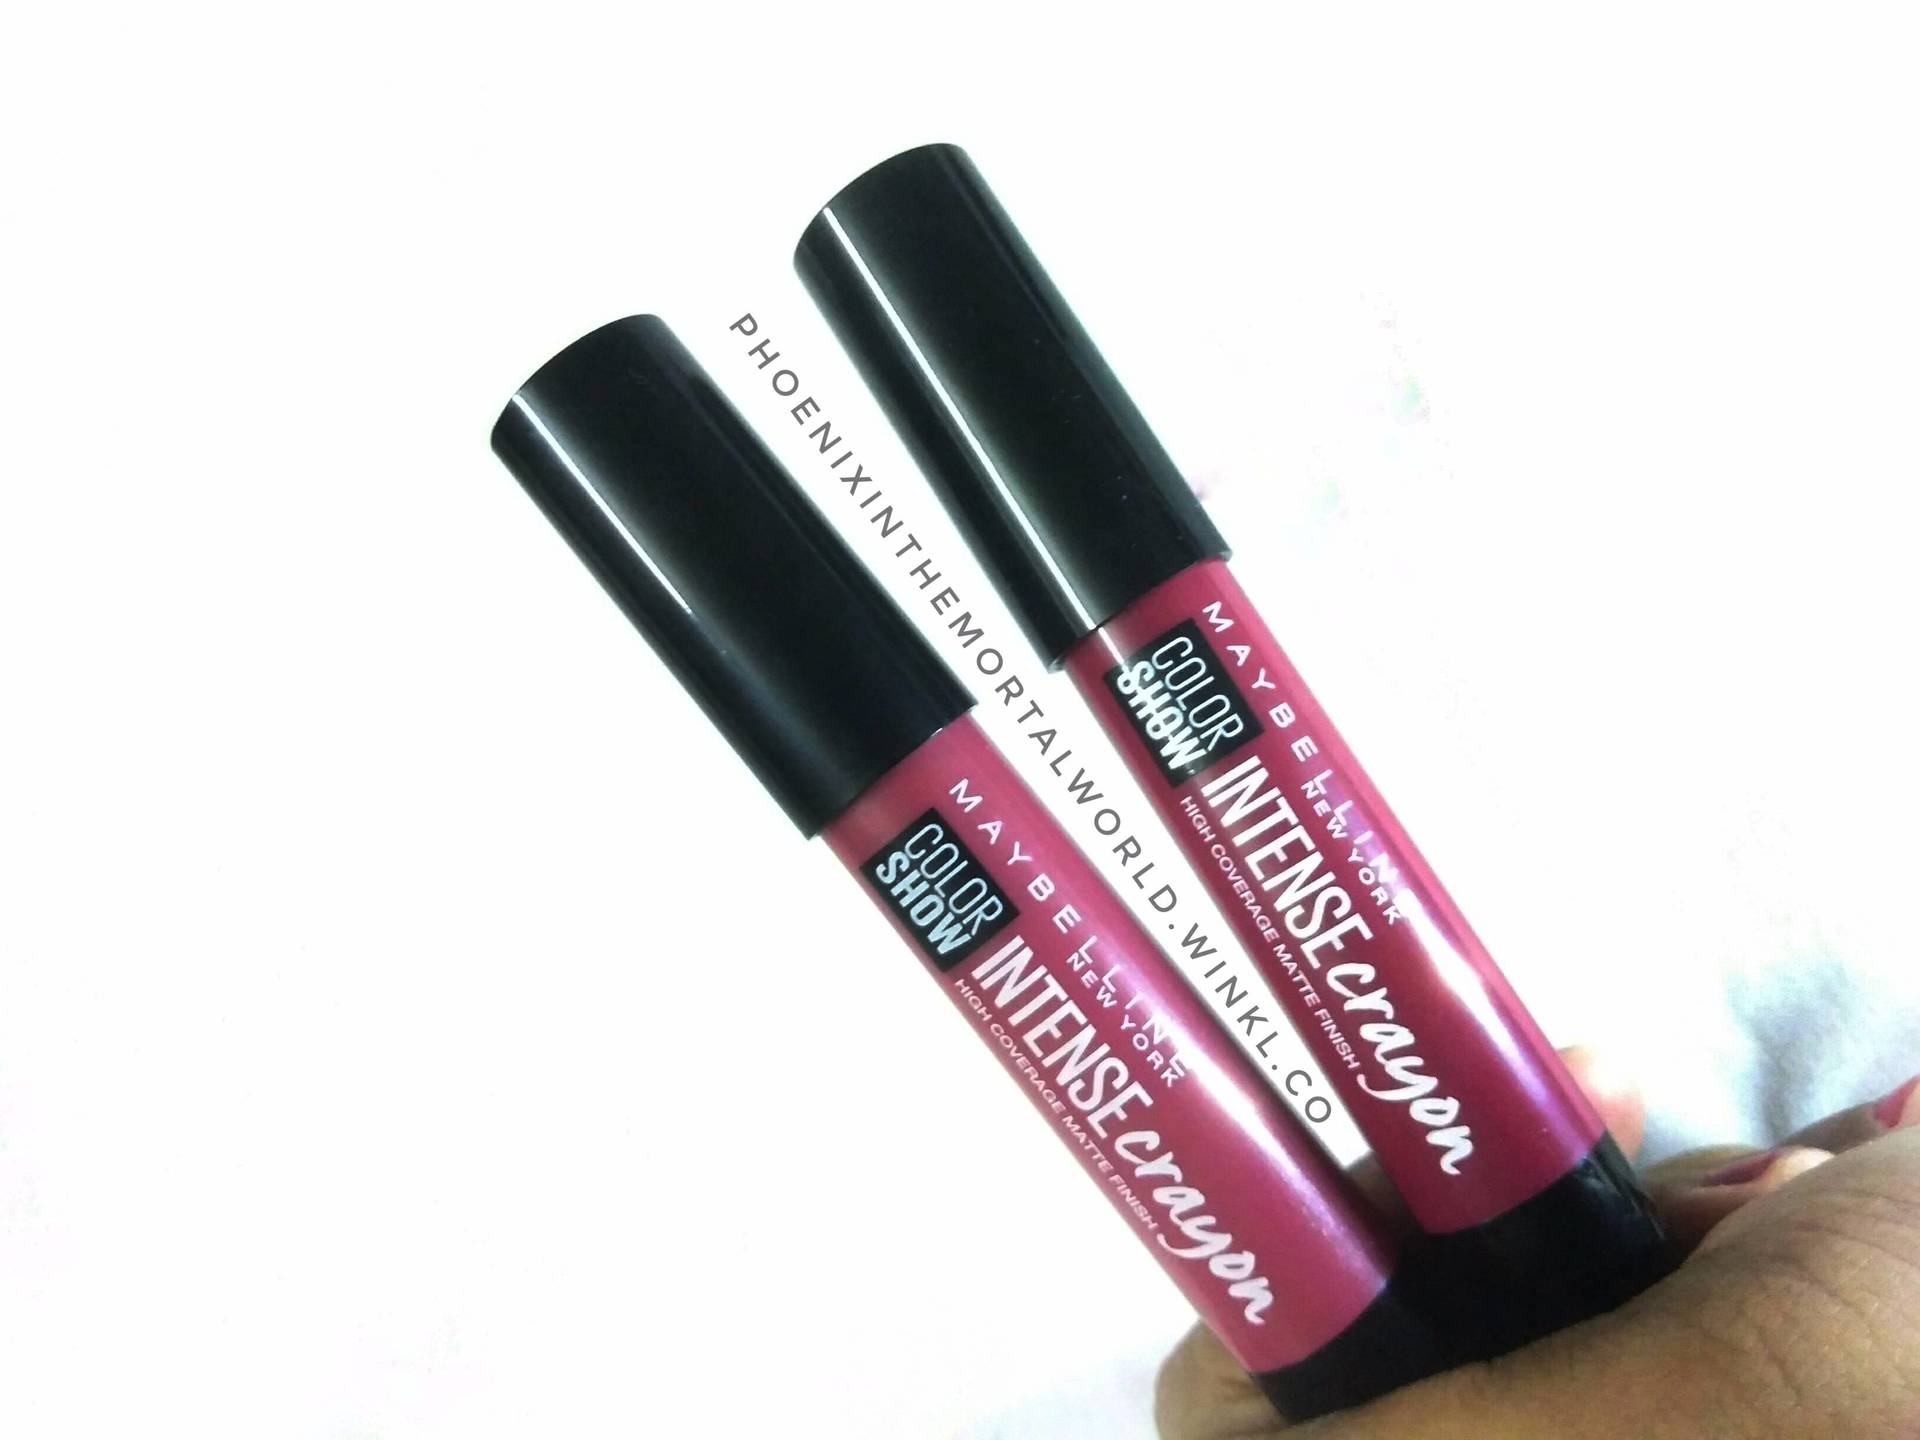 NEW LAUNCH! ALL SHADES SWATCHED! Maybelline Colorshow Intense Crayons - Review image